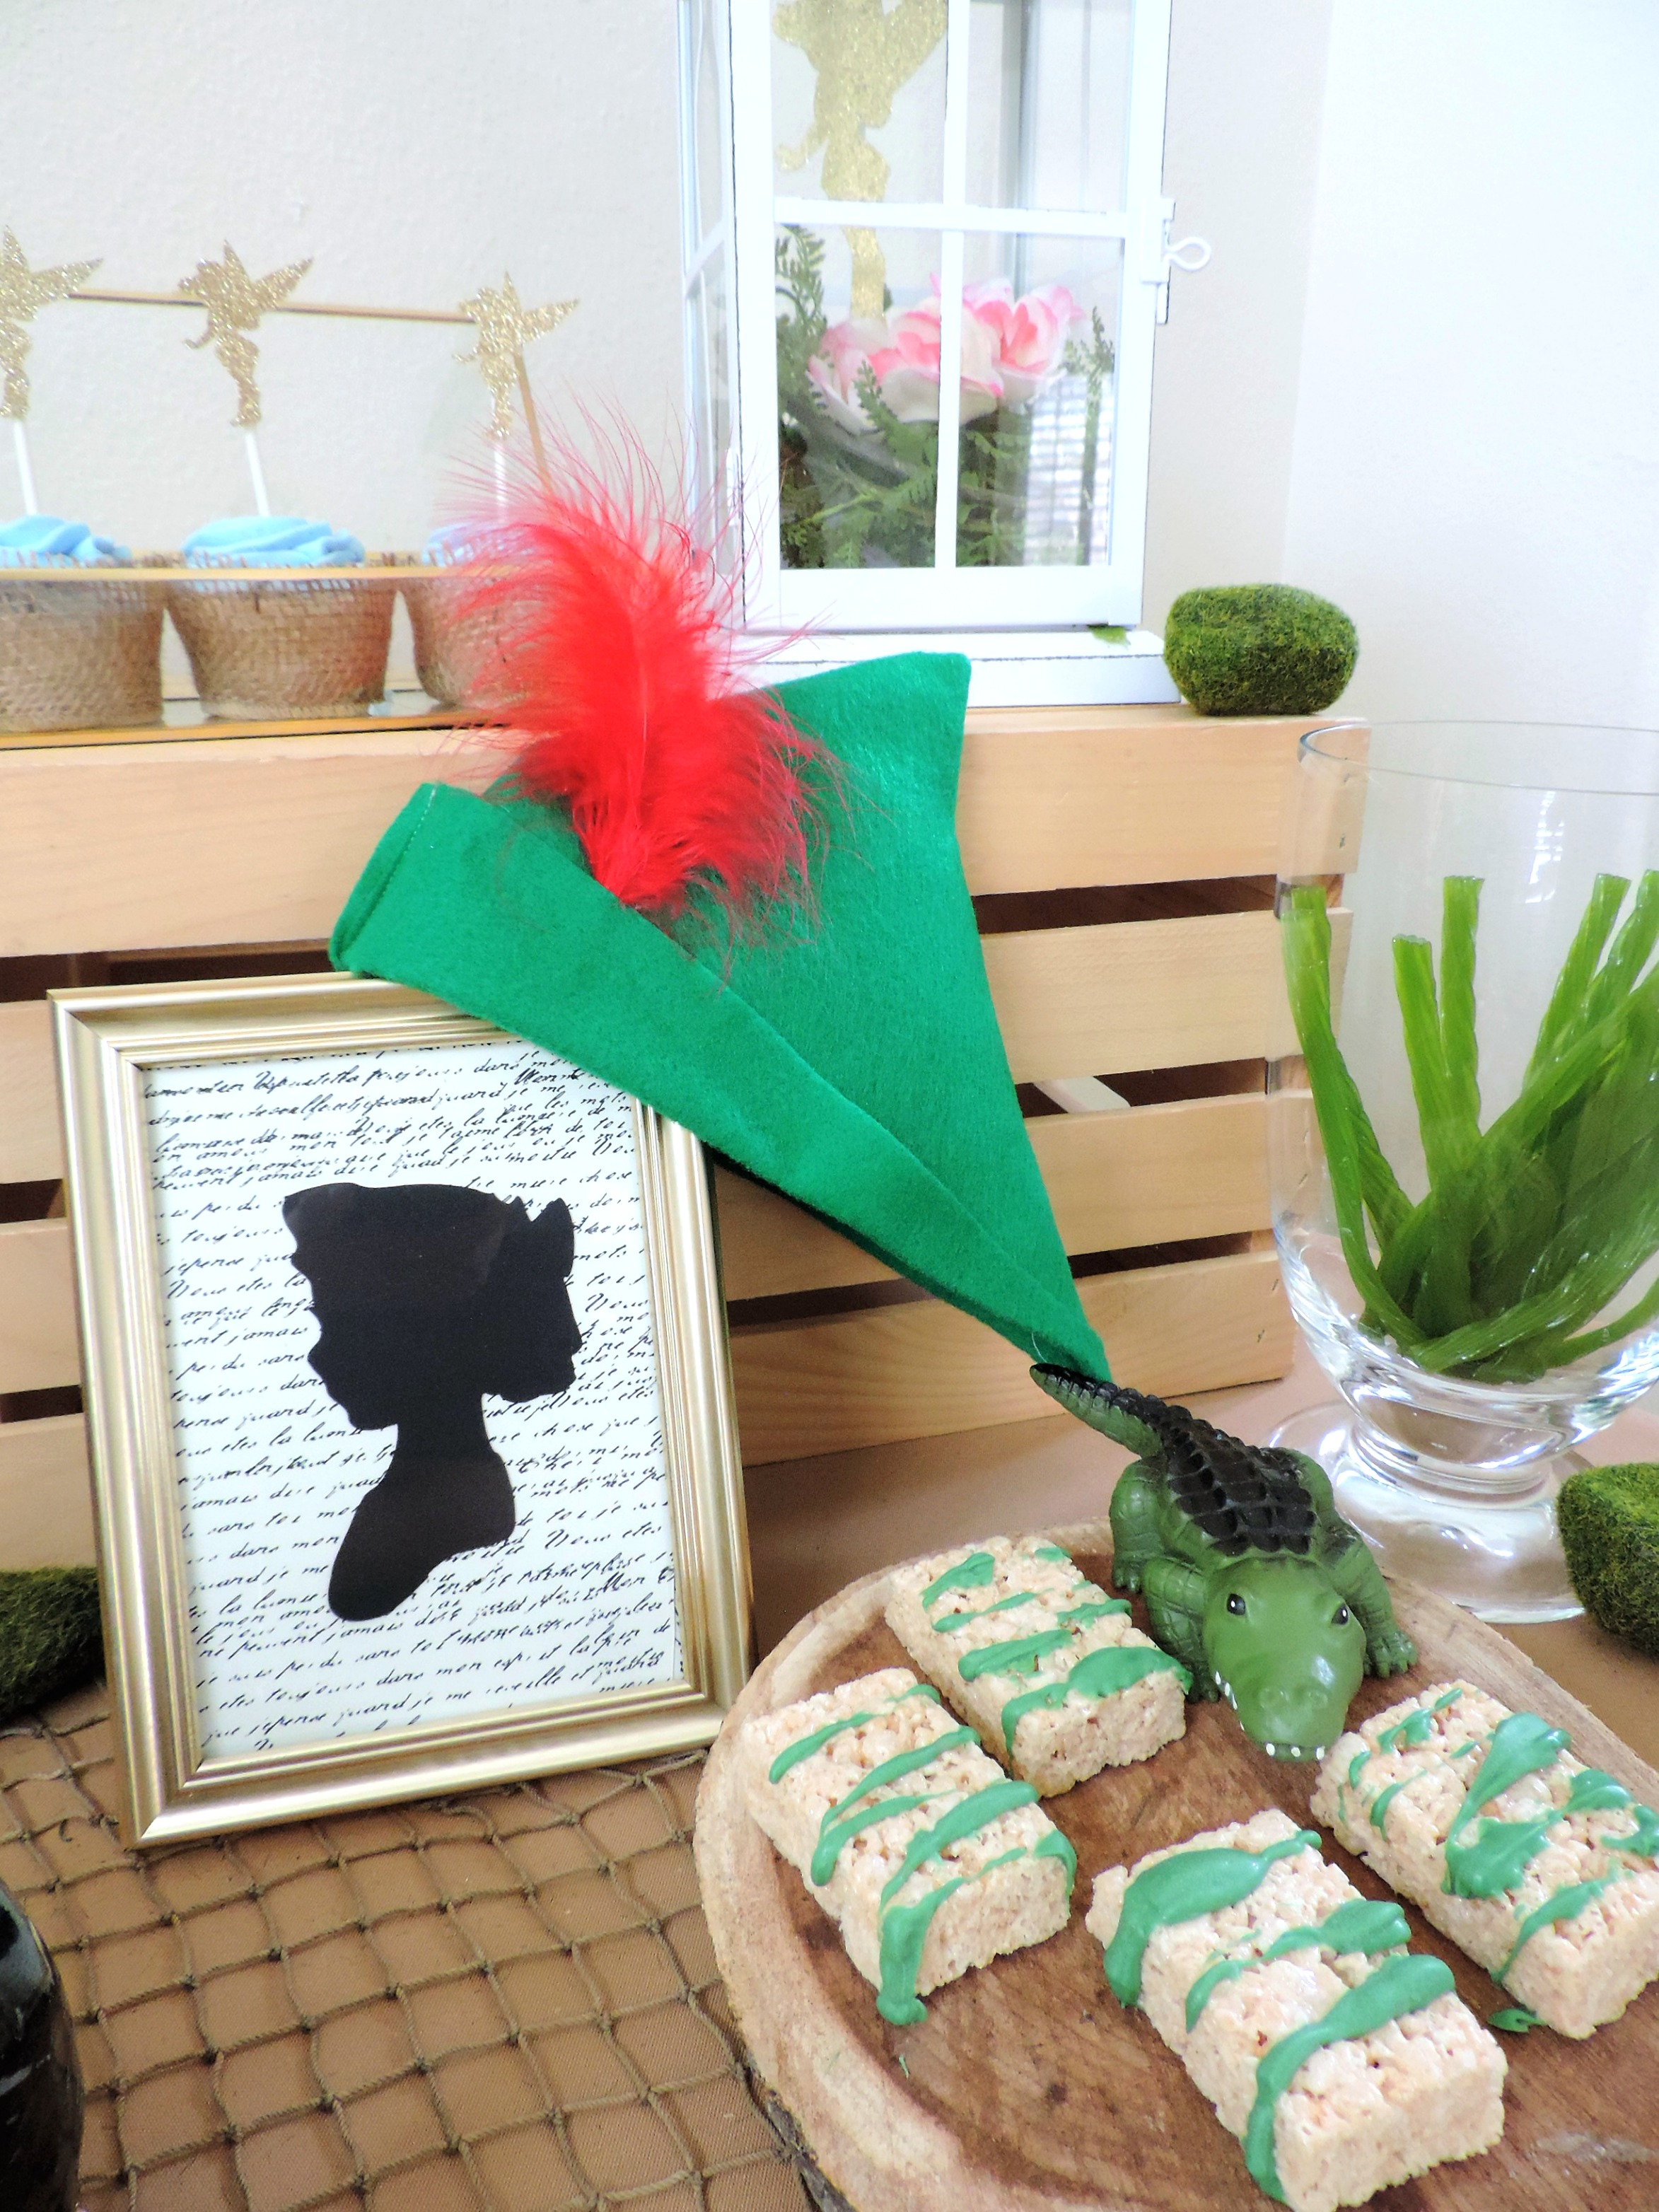 Peter Pan and Wendy-Peter Pan Party-Tinkerbell-Peter Pan Party Decor-peter pan party ideas-peter pan birthday-peter pan birthday decor-www.SugarPartiesLA.com.jpg